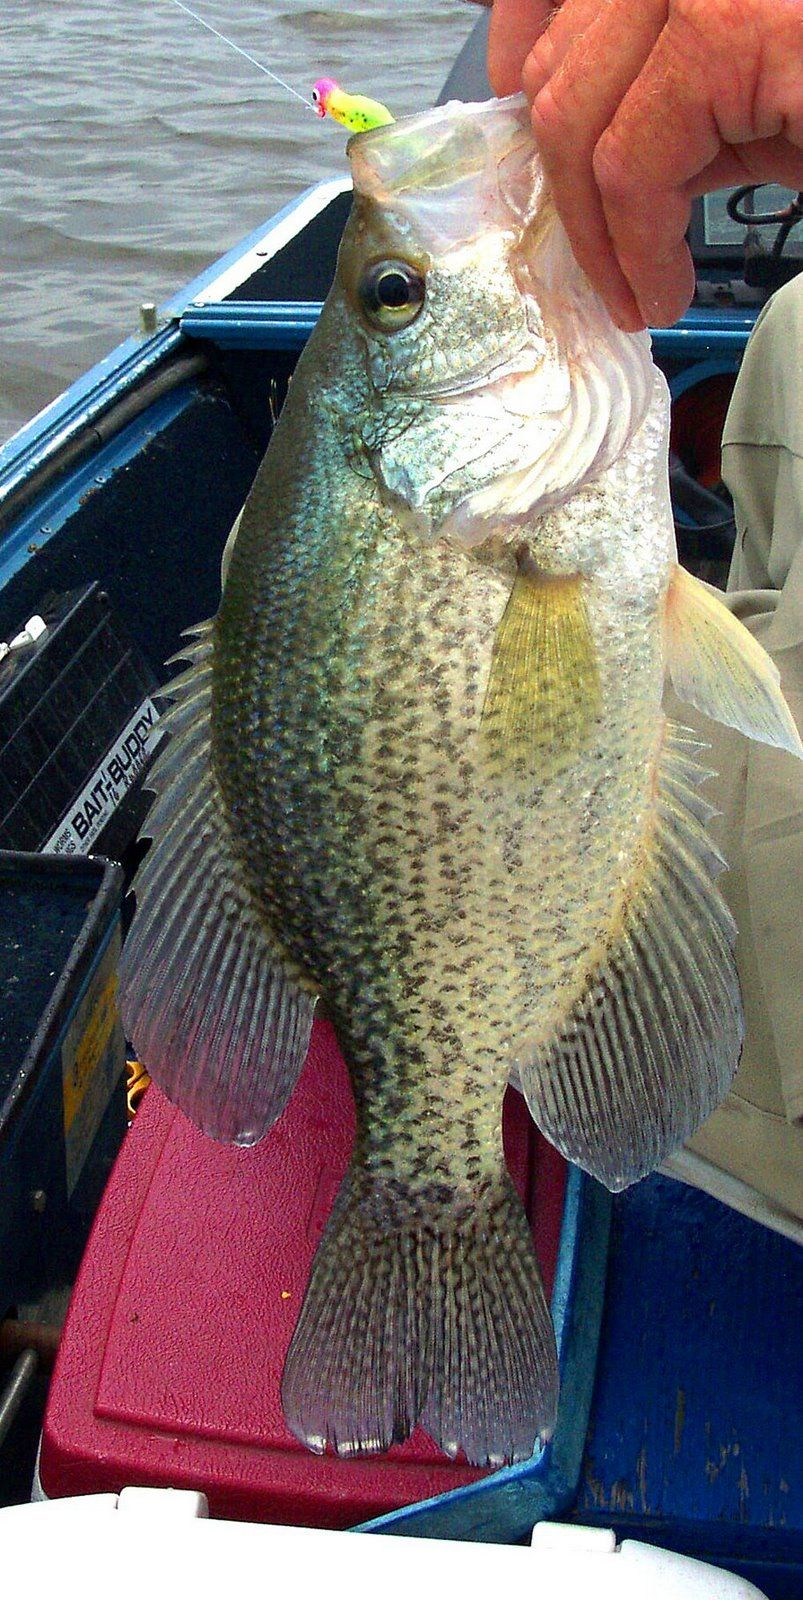 Crappie yummy a hunting we will go pinterest for Ice fishing at night